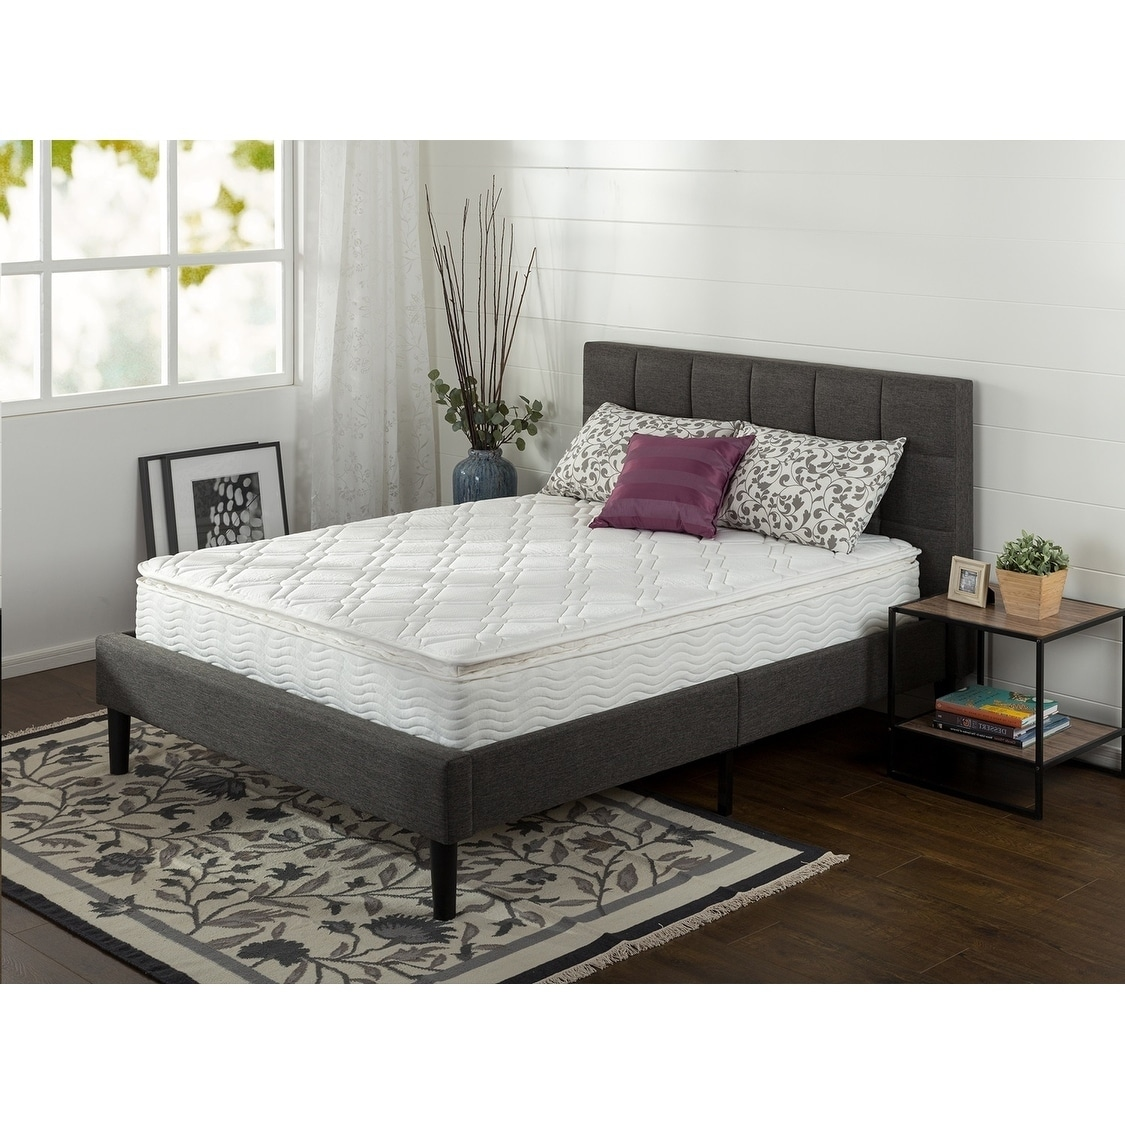 Priage Pillow Top 10-inch Twin-size iCoil Spring Mattress...